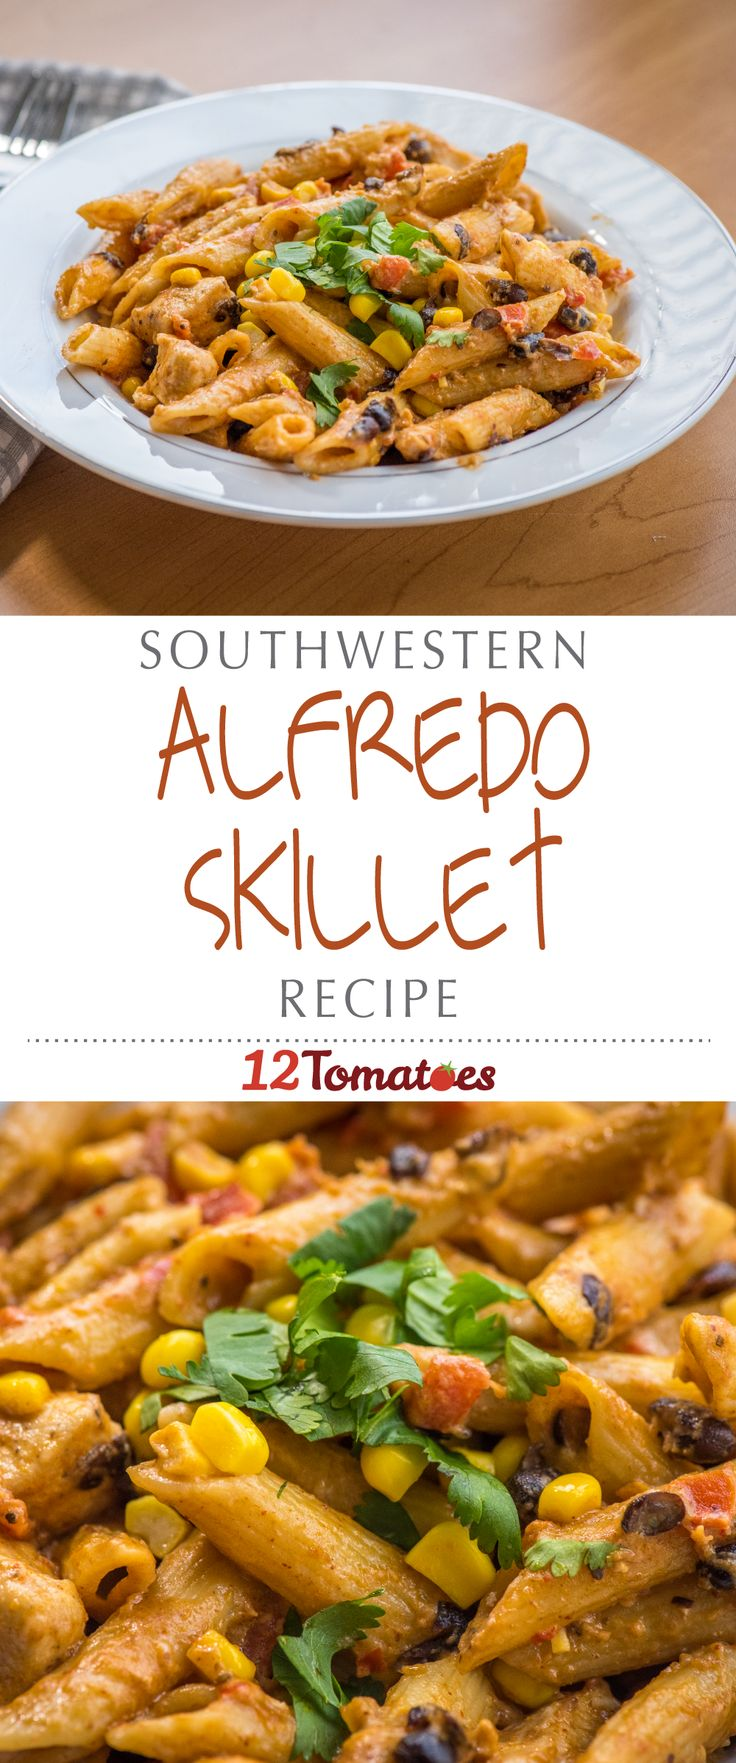 Southwestern Chicken Alfredo Skillet   This dish is so creamy and flavorful, and the zesty south-of-the-border spices are mellowed out by the velvety, from-scratch alfredo sauce.